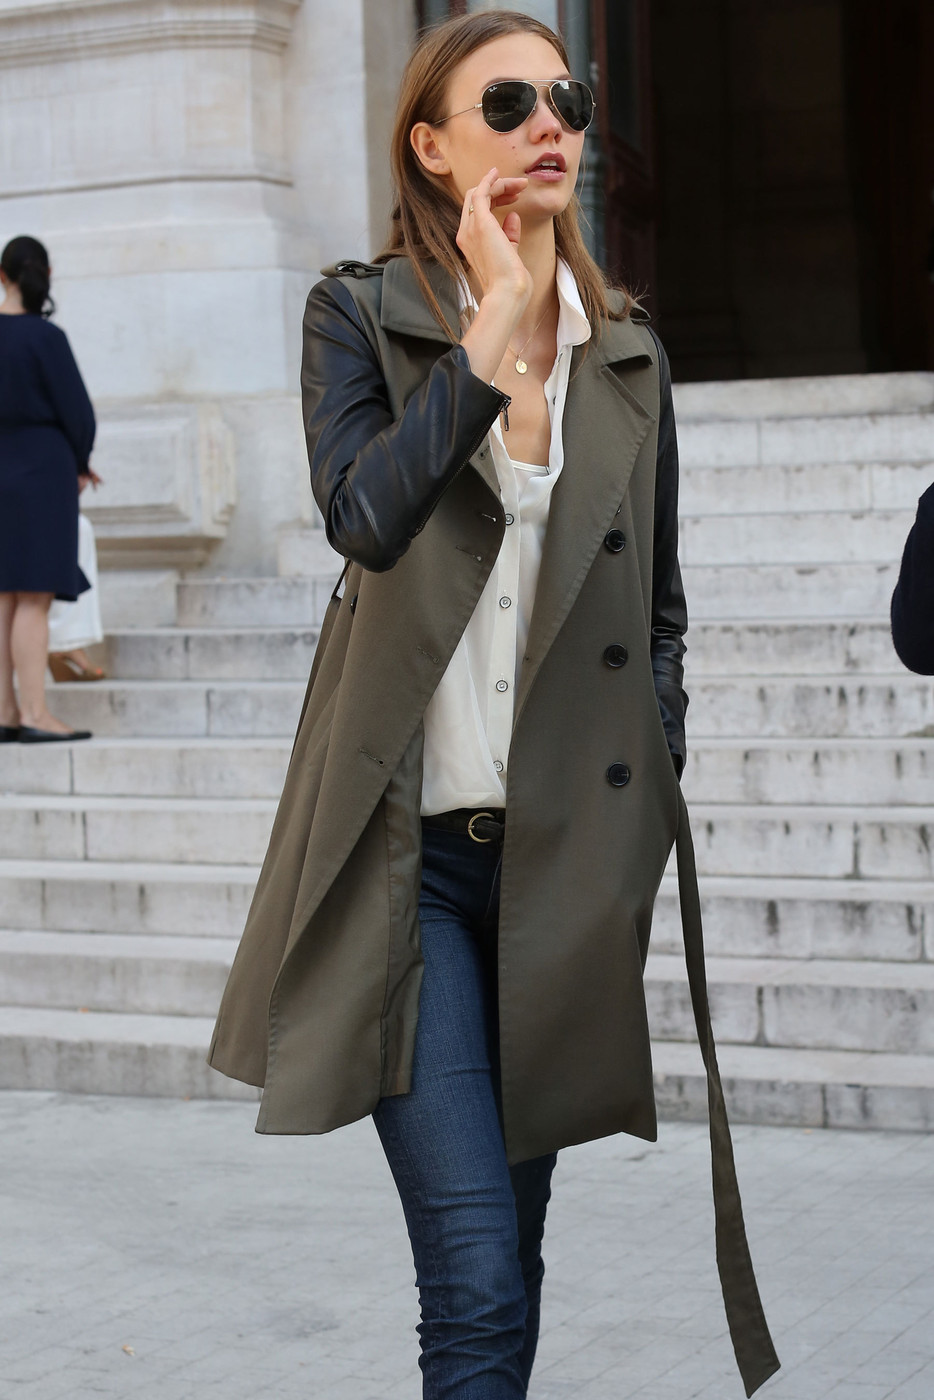 12 Fresh Ways To Wear A Trench Coat Inspired By Models